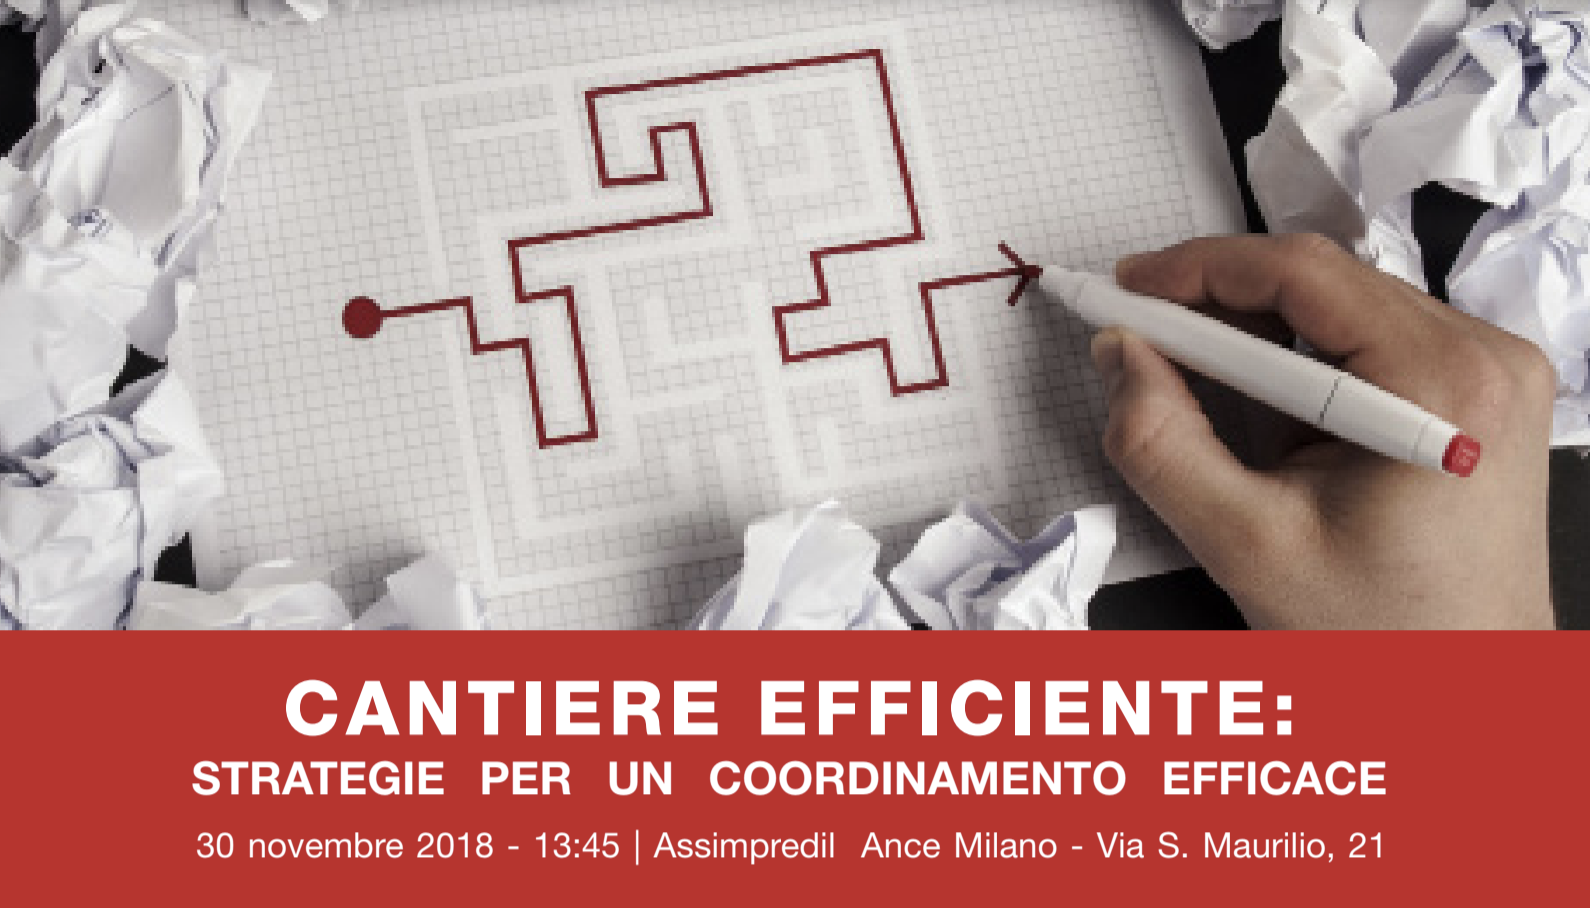 Cantiere efficiente: strategie per un coordinamento efficace 2018